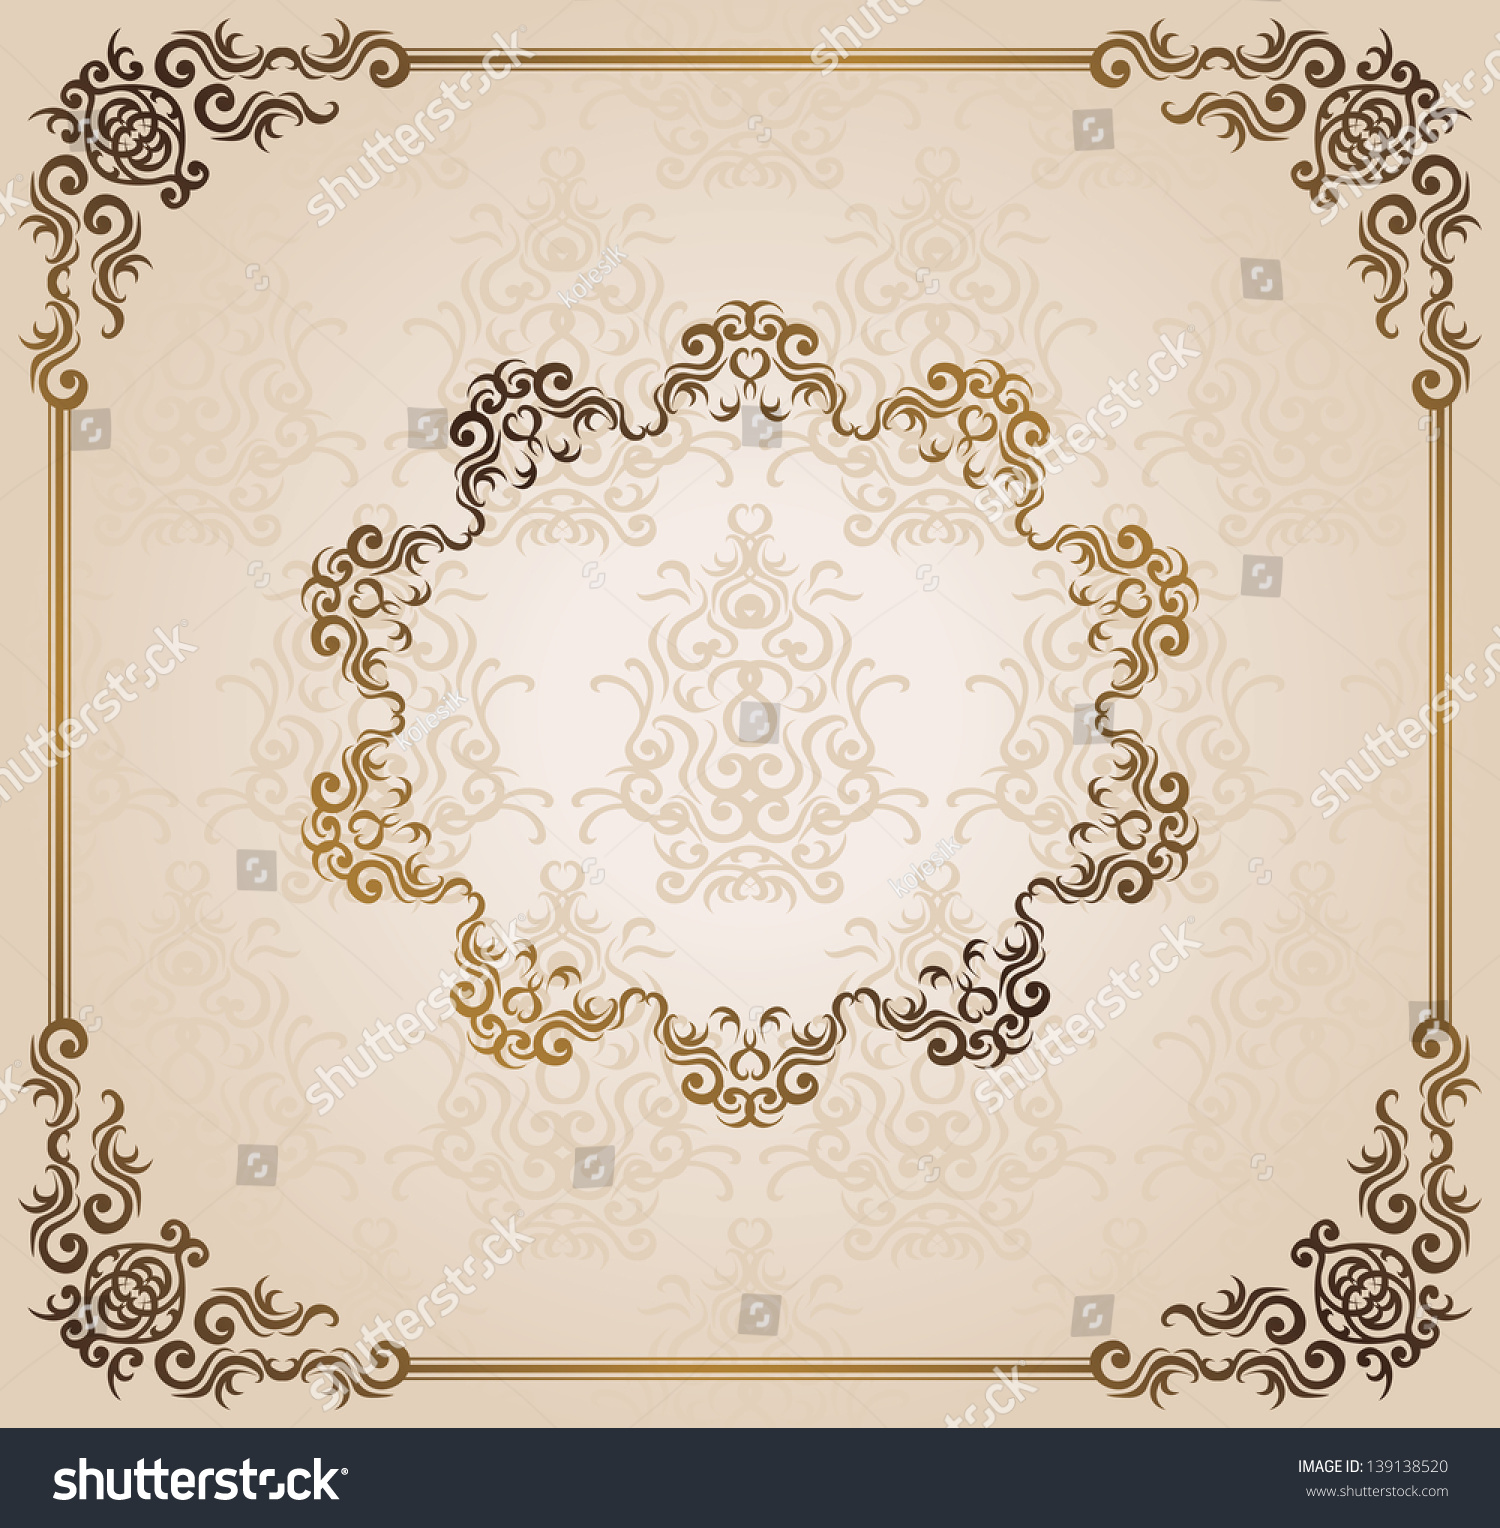 Vintage Damask Wallpaper Frame Can Be Stock Vector (Royalty Free ...